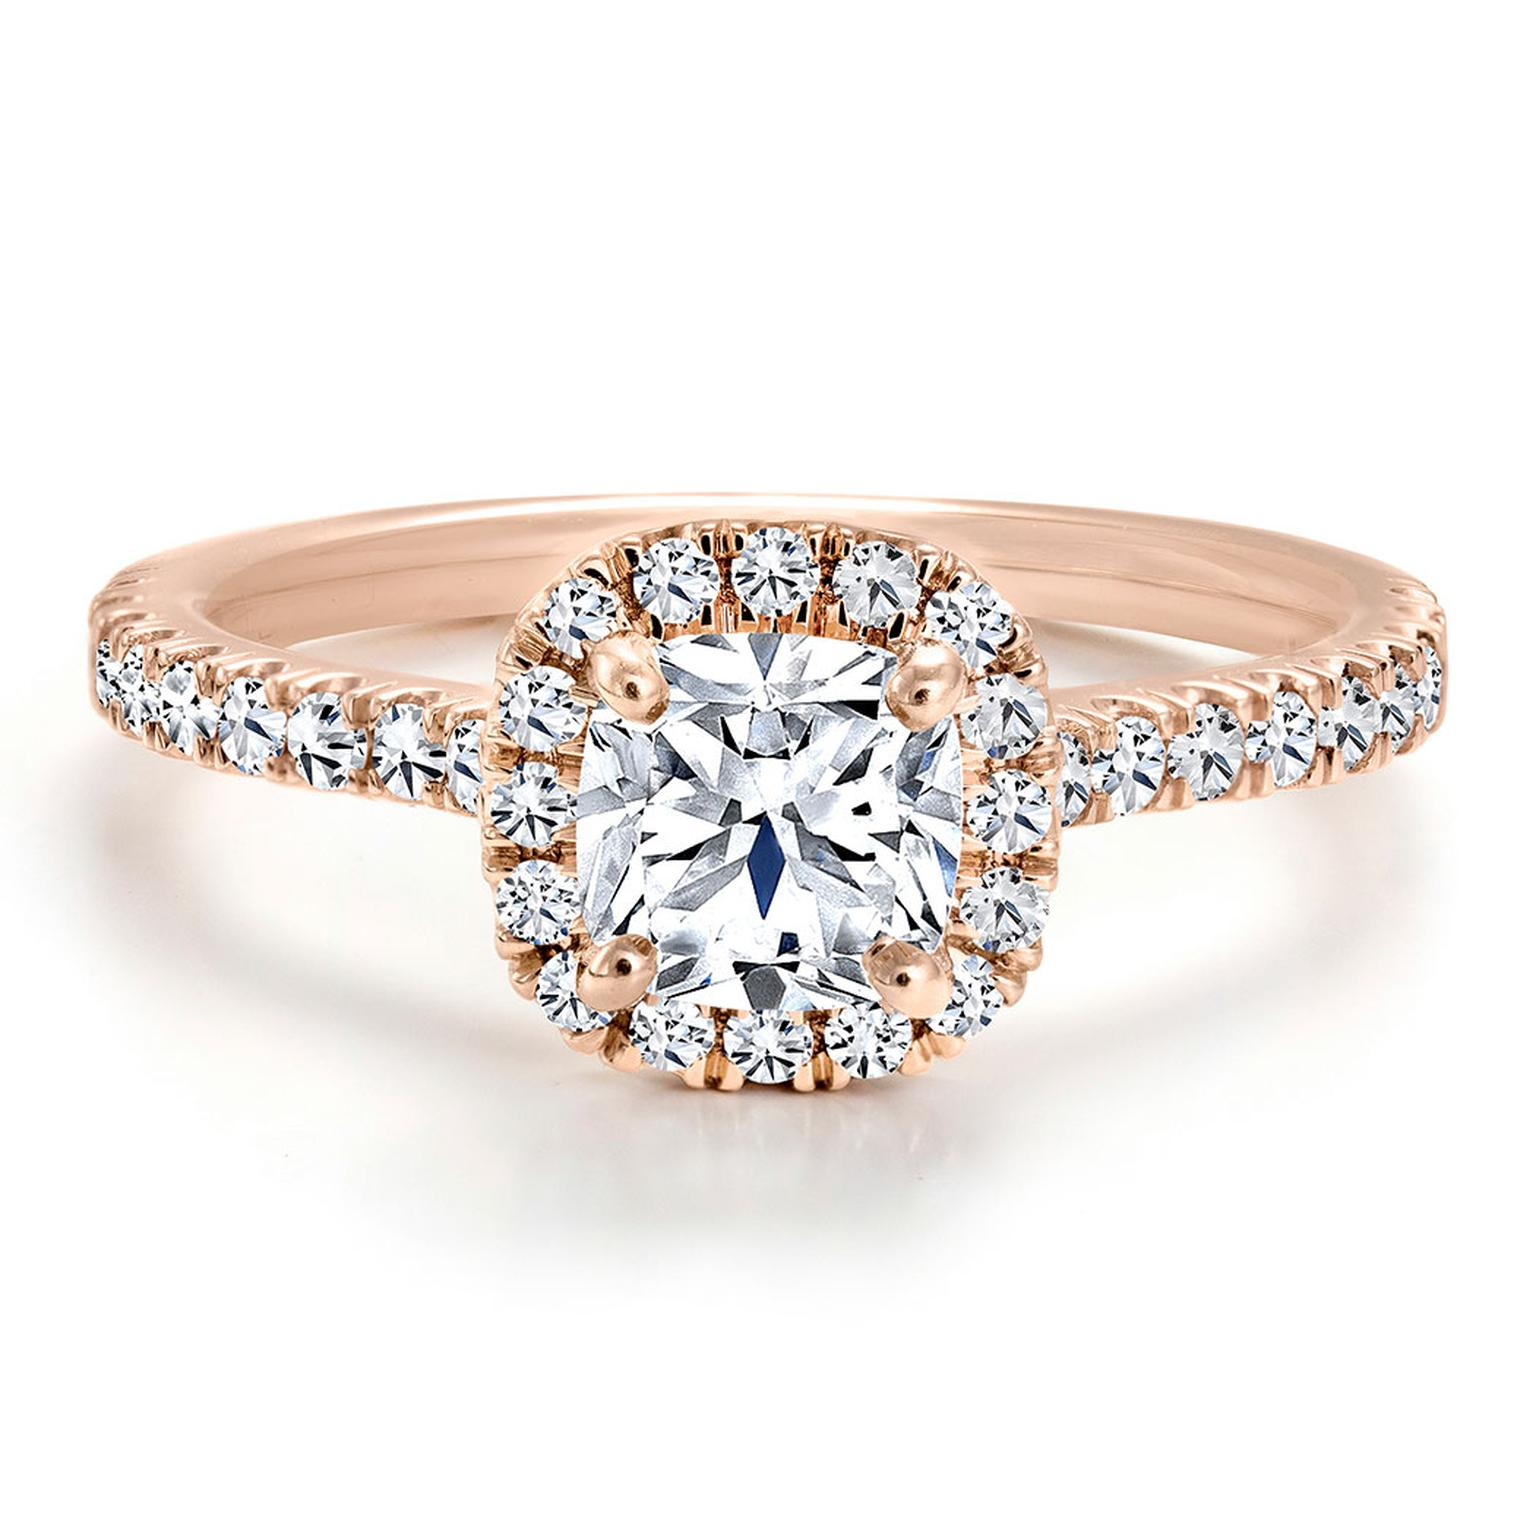 Forevermark Black Label rose gold and diamond engagement ring